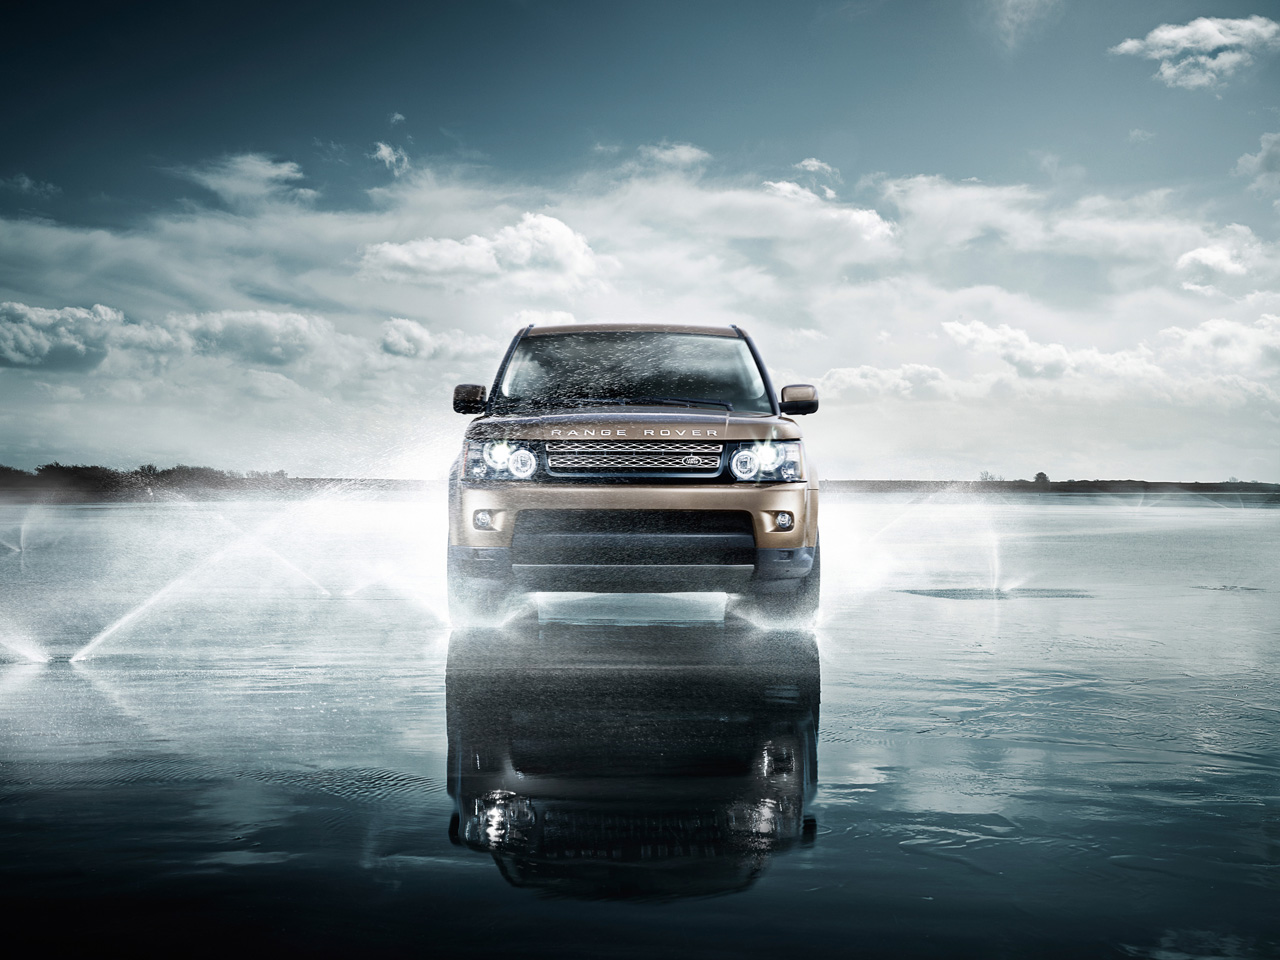 2011 land rover dc100 concept side 2 1280x960 wallpaper - 2011 Land Rover Dc100 Concept Side 2 1280x960 Wallpaper 53